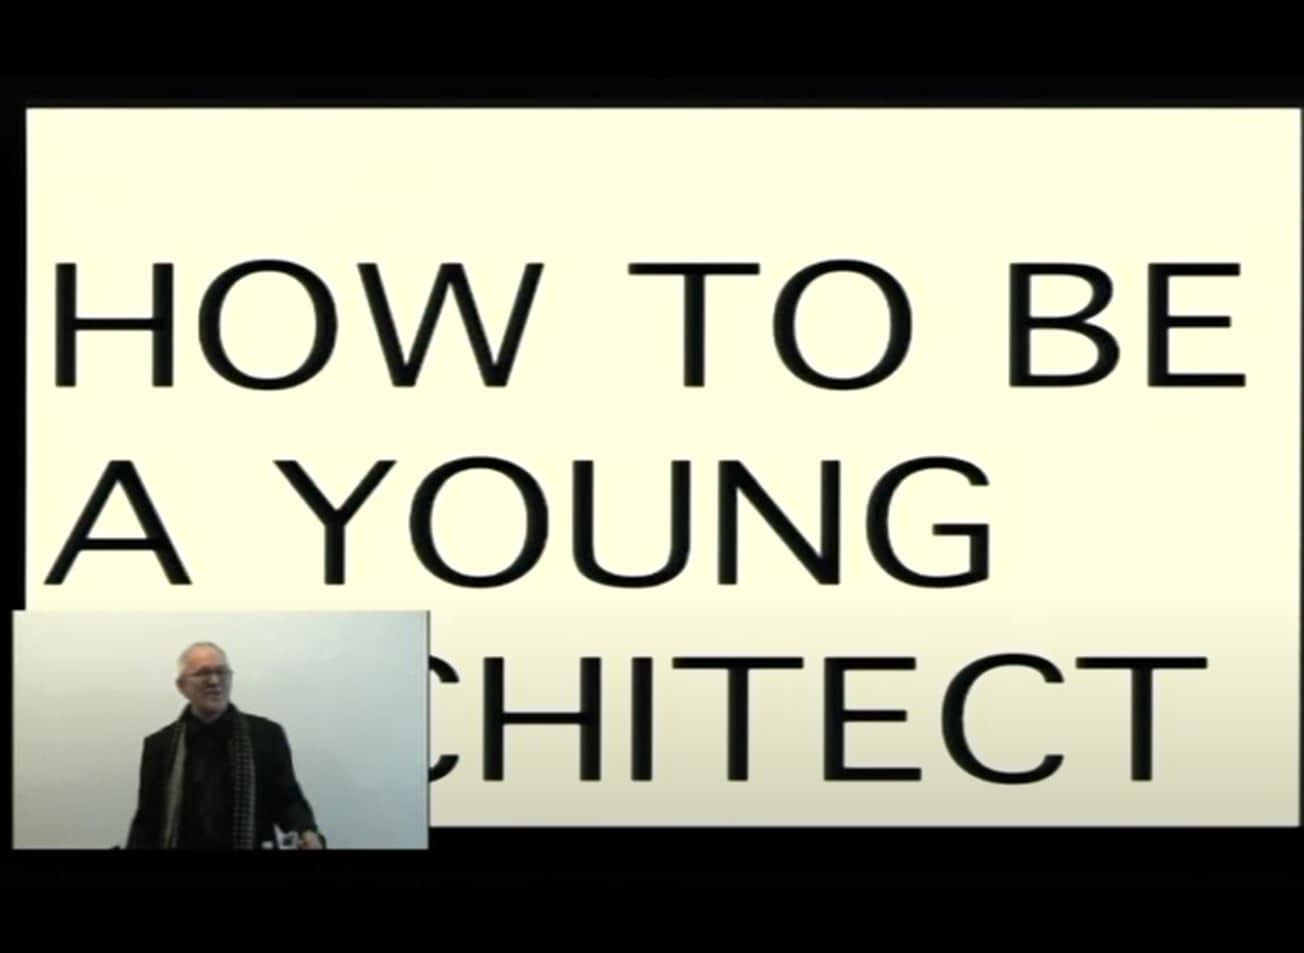 Snapshot from Peter Cook's lecture 'How to be a young architect'